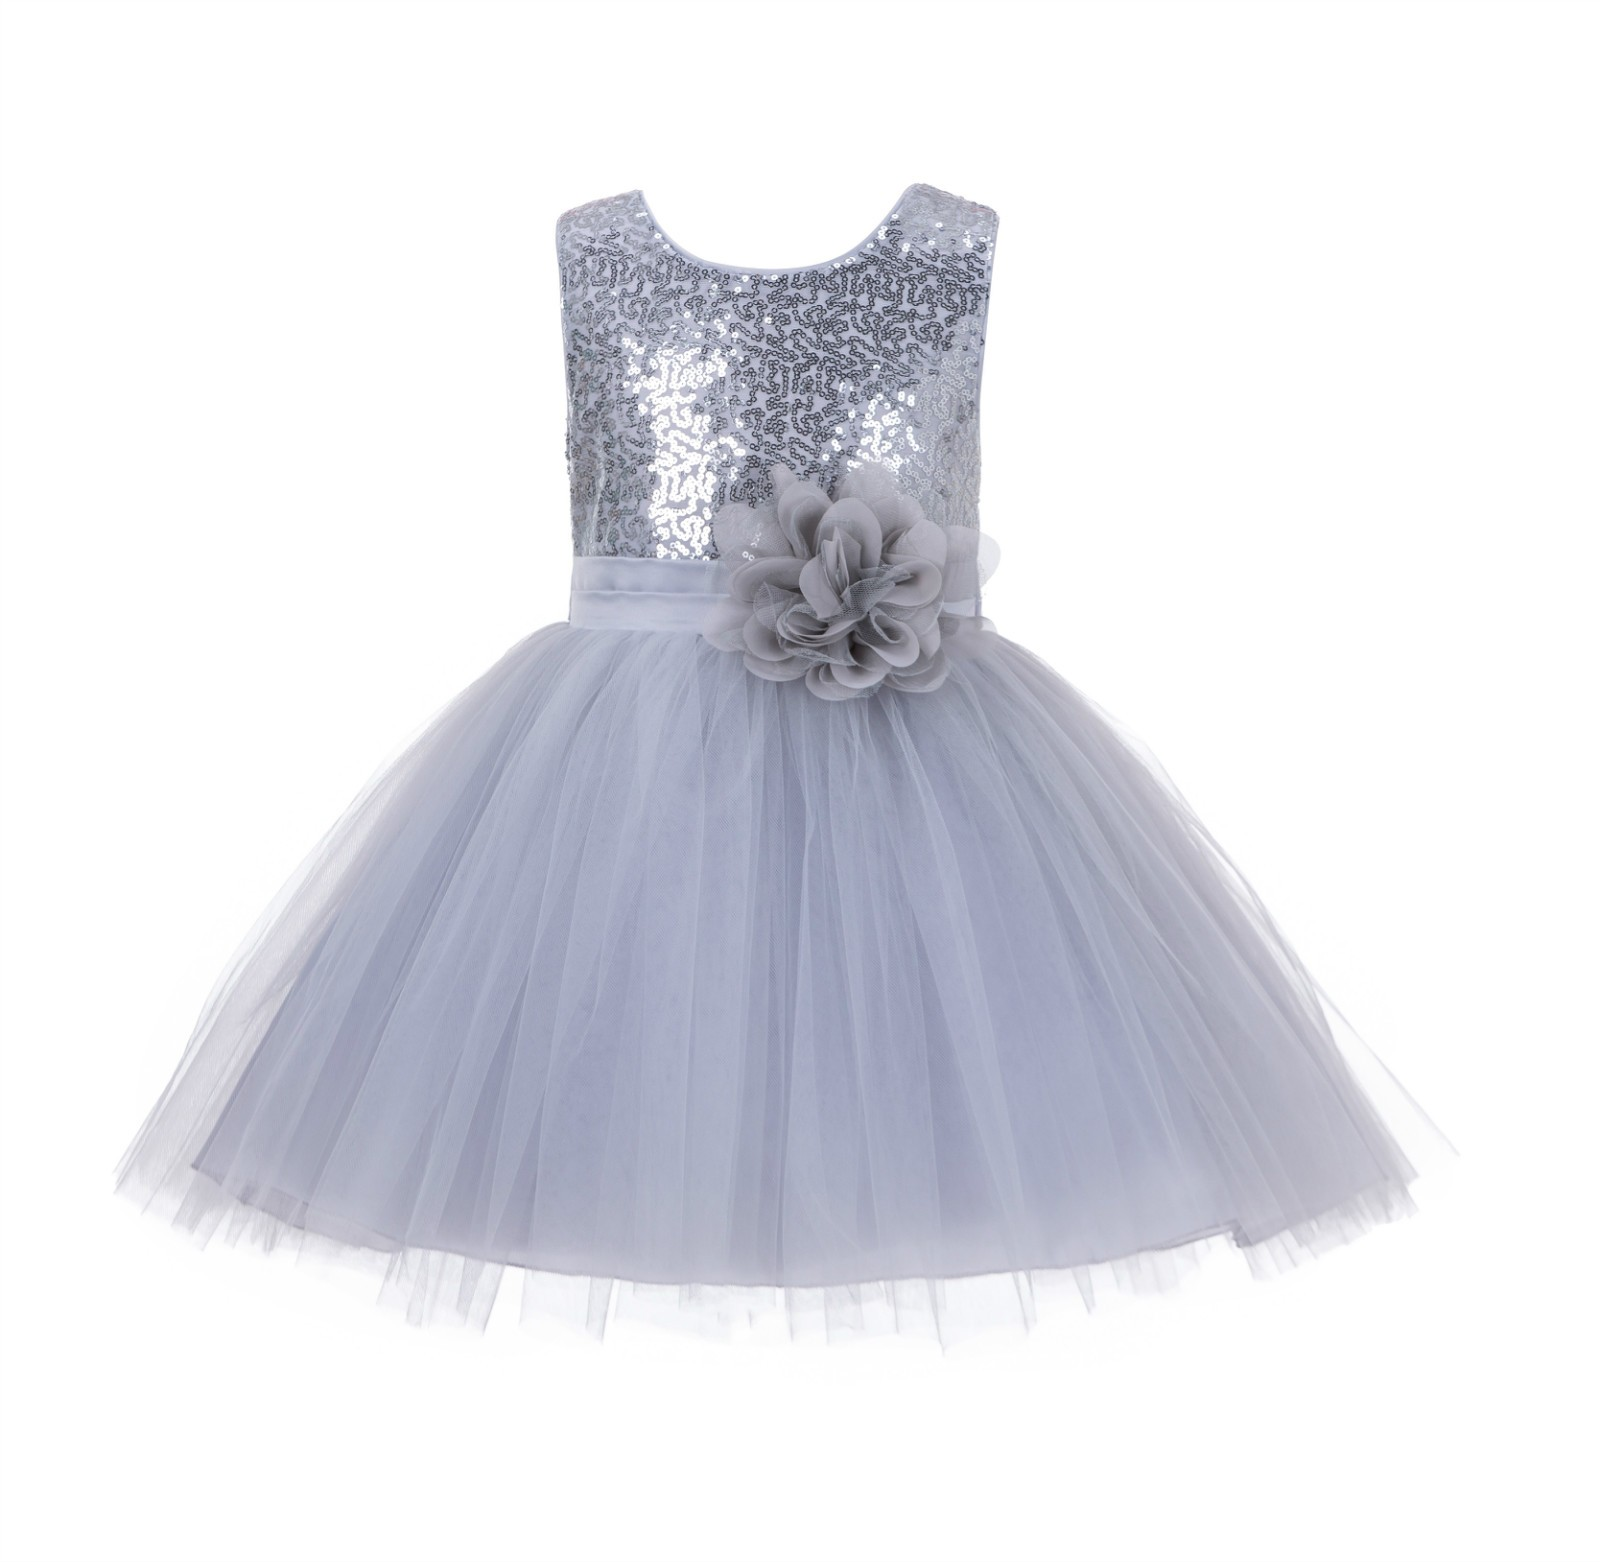 Silver Dazzling Sequins Mesh Tulle Flower Girl Dress Elegant 124NF